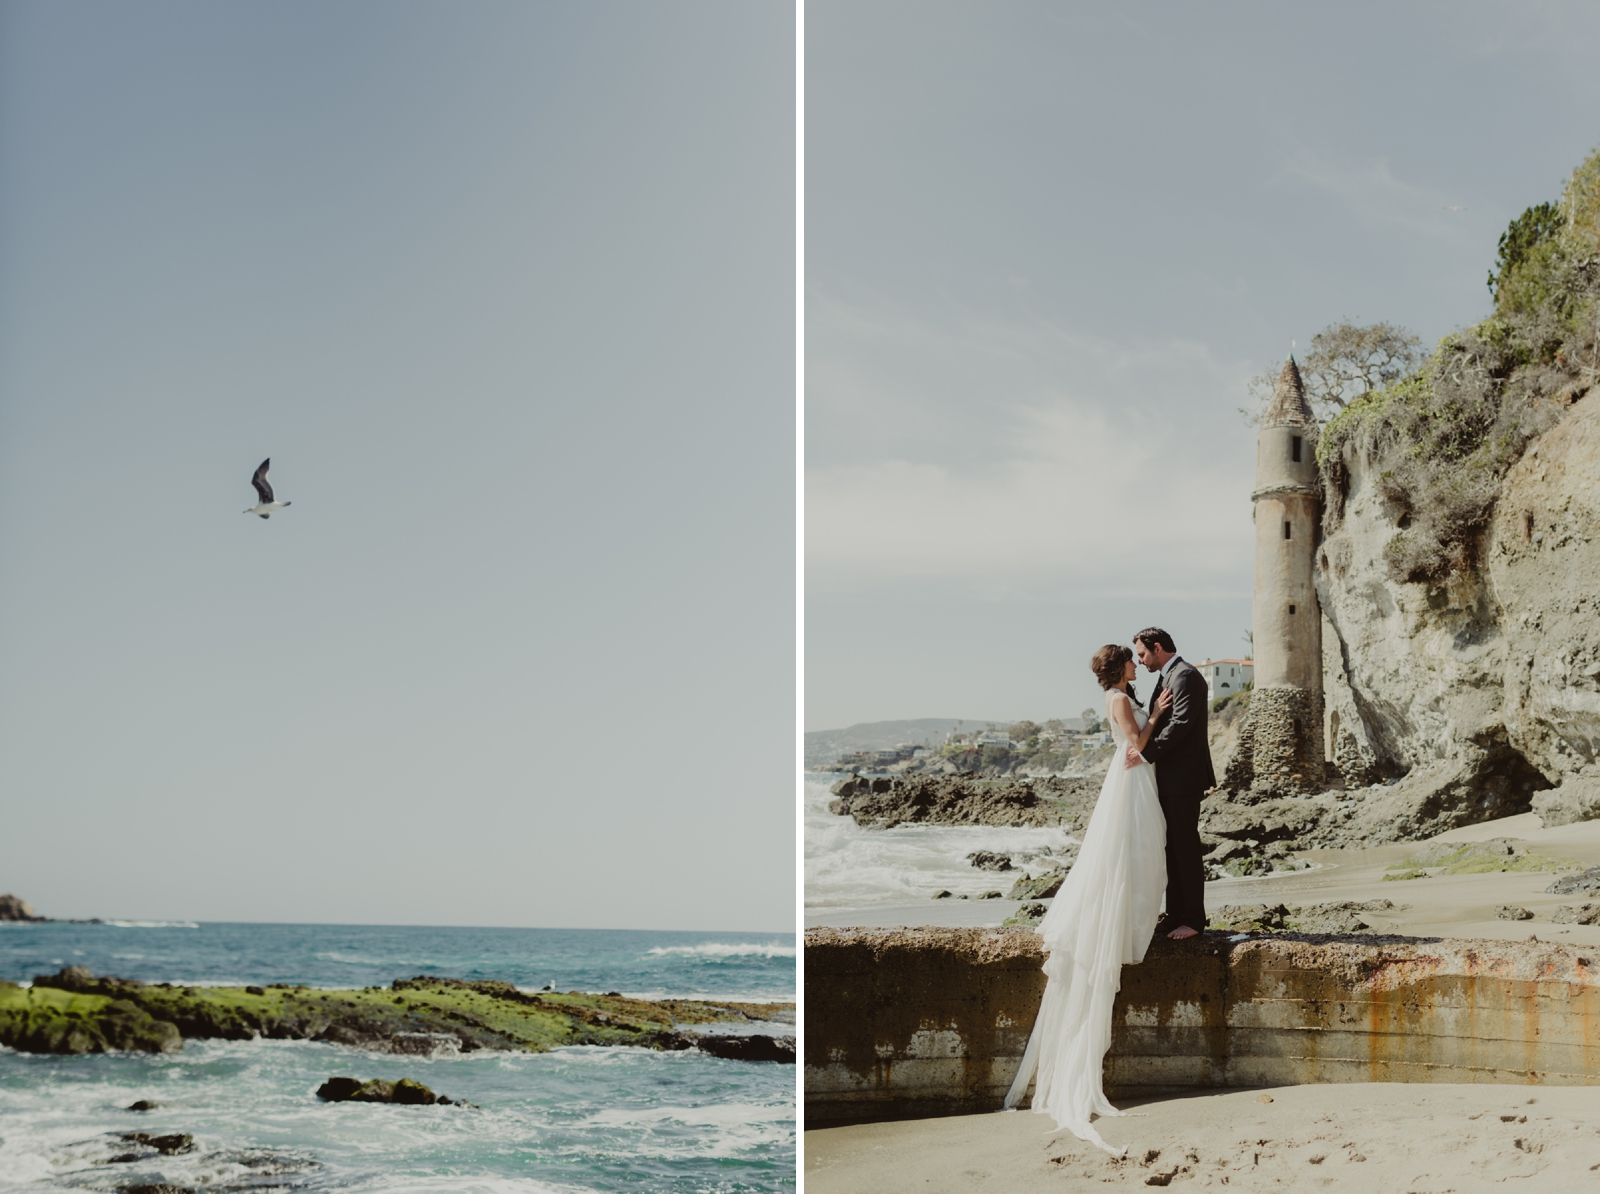 Kevin+Angie-Married-Blog-00004.jpg